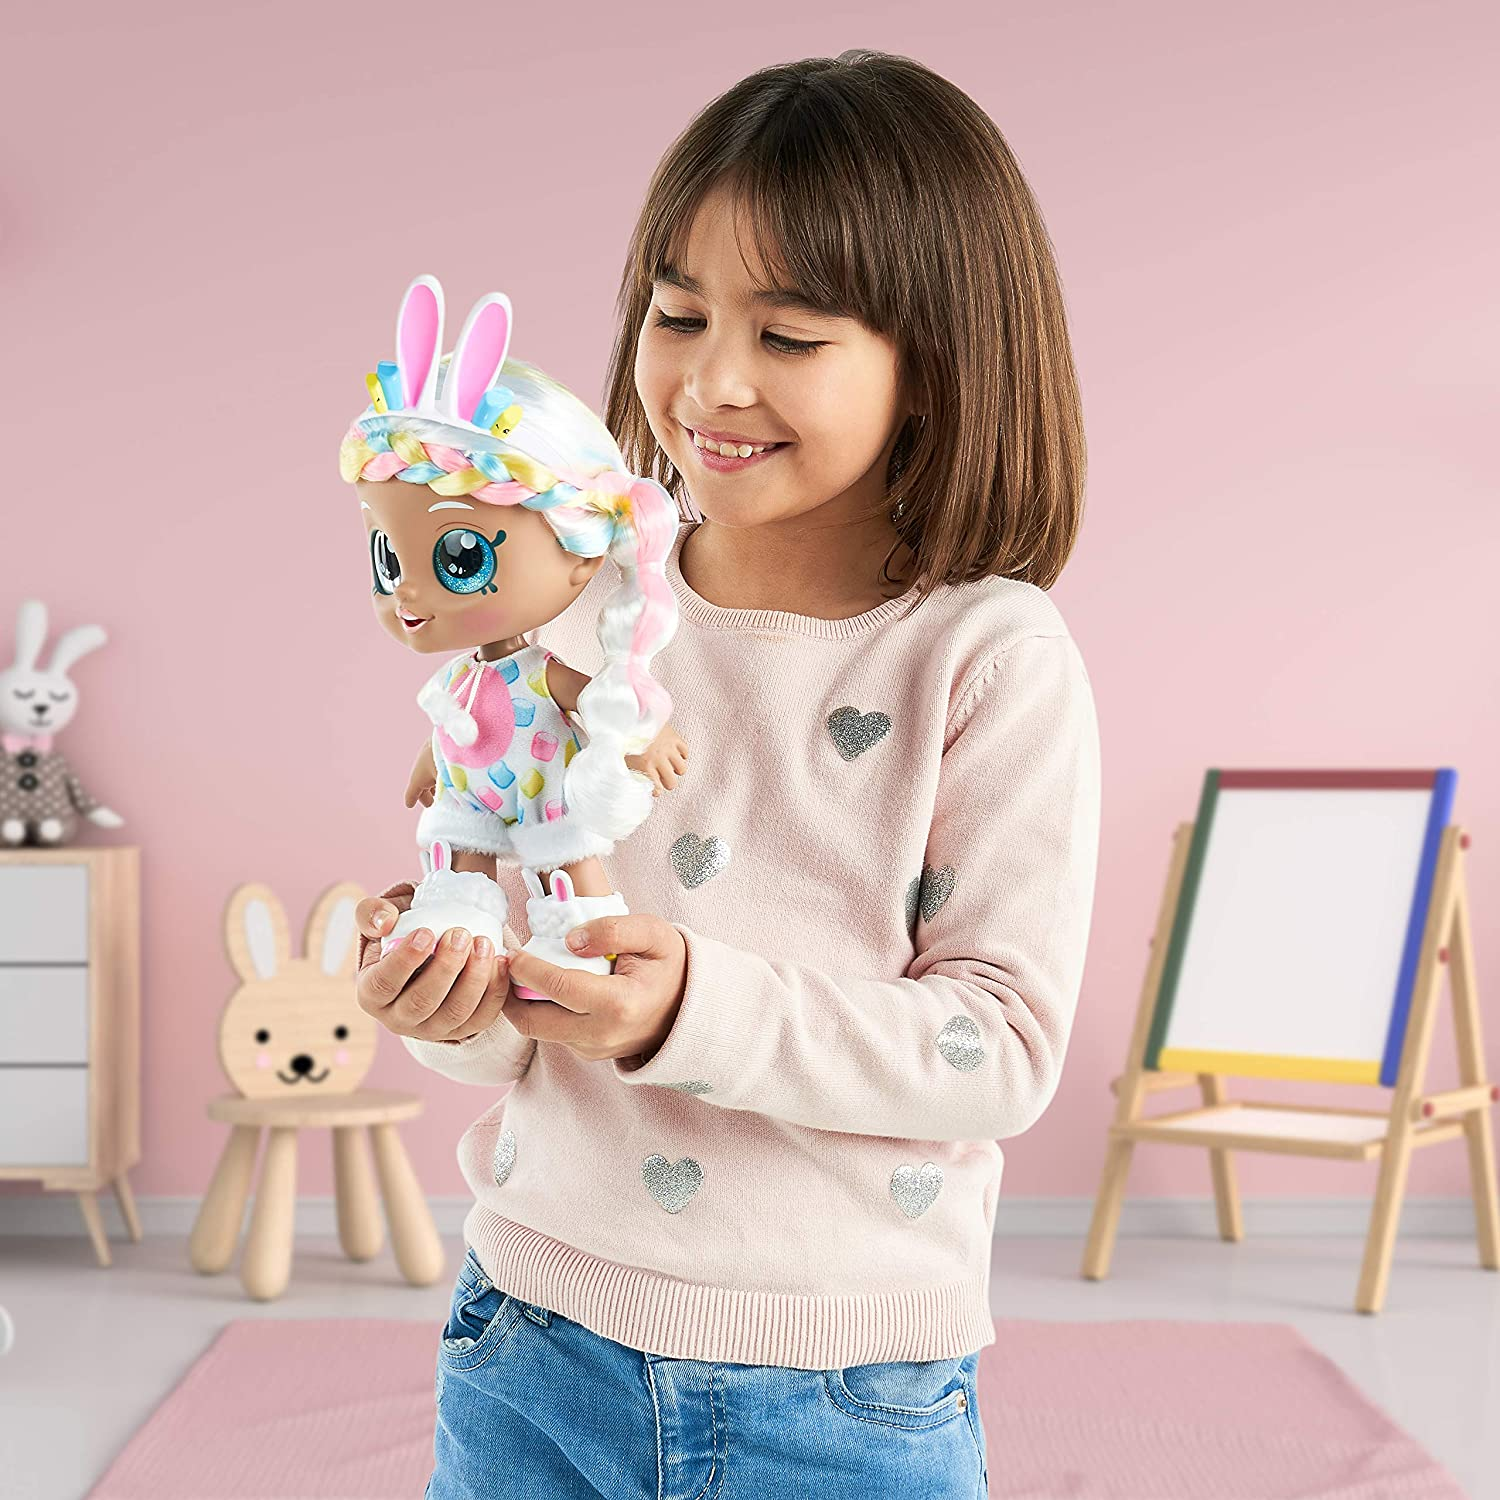 Kindi Kids Dress Up Friends Changeable Clothes and Removable Shoes for Imaginative Kids Doll Companion for Ages 3+ Pre-School Play Doll Marsha Mello Bunny